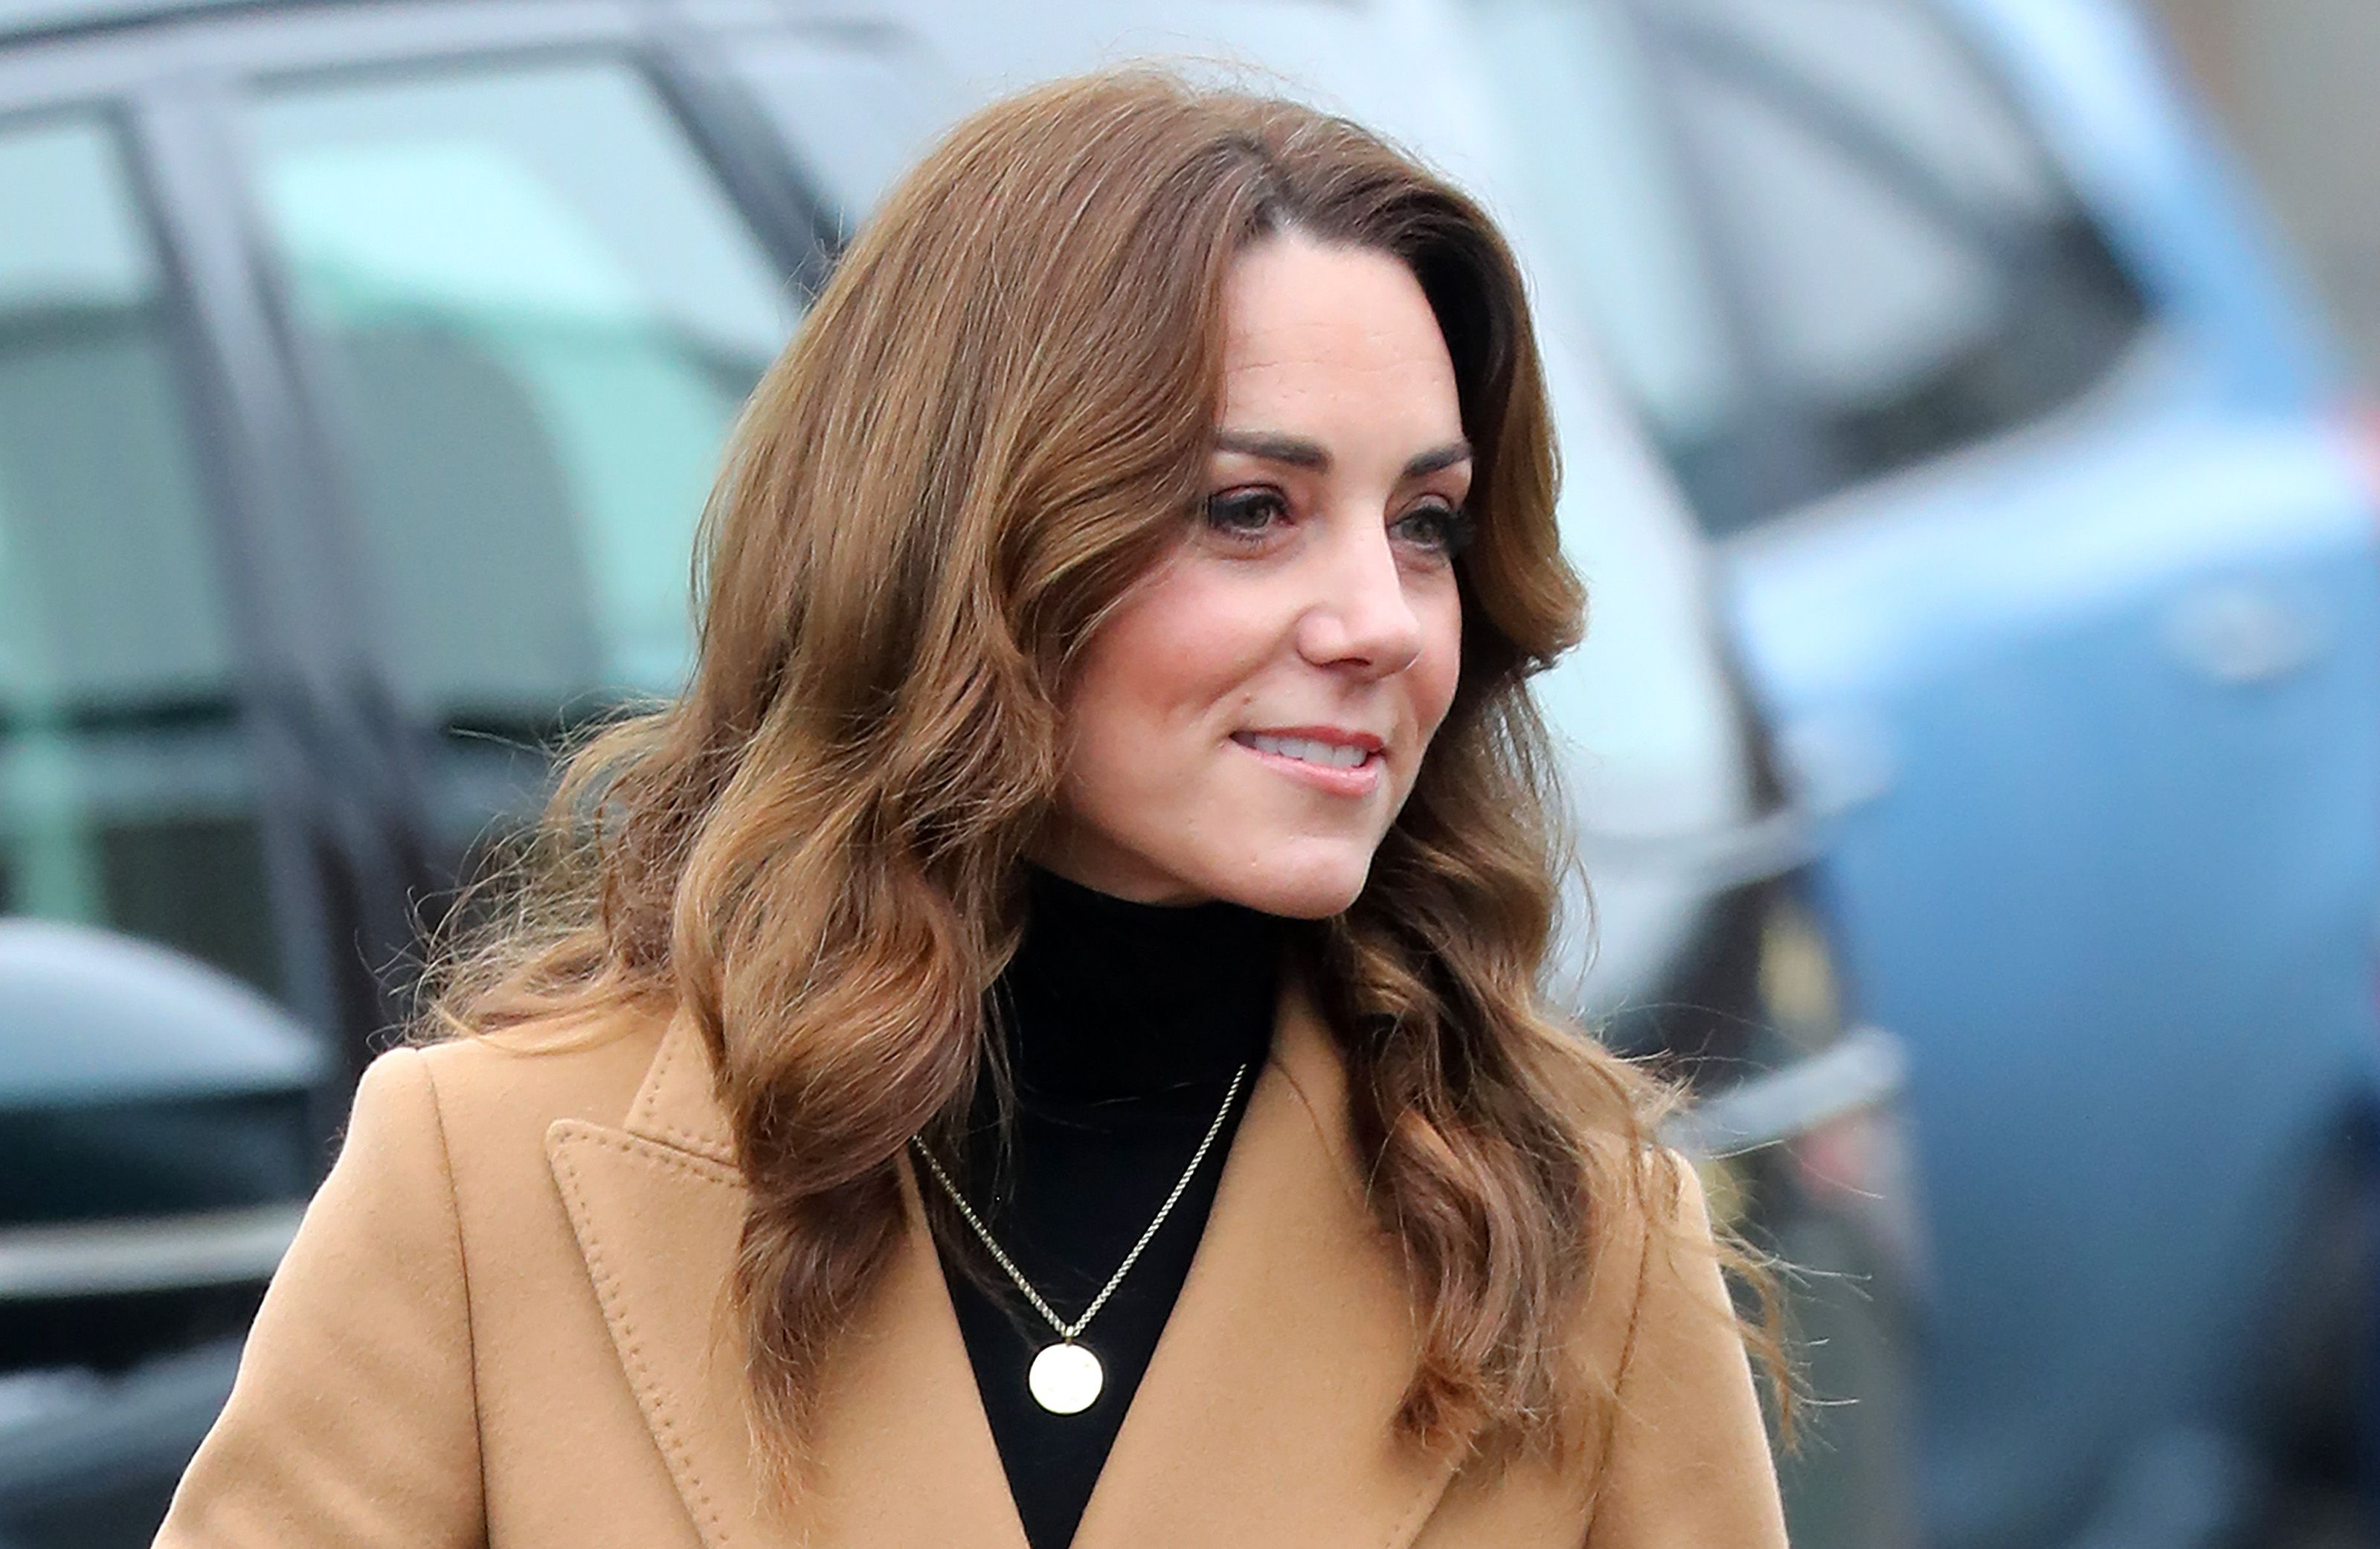 The Duchess of Cambridge in a black turtleneck and tan coat